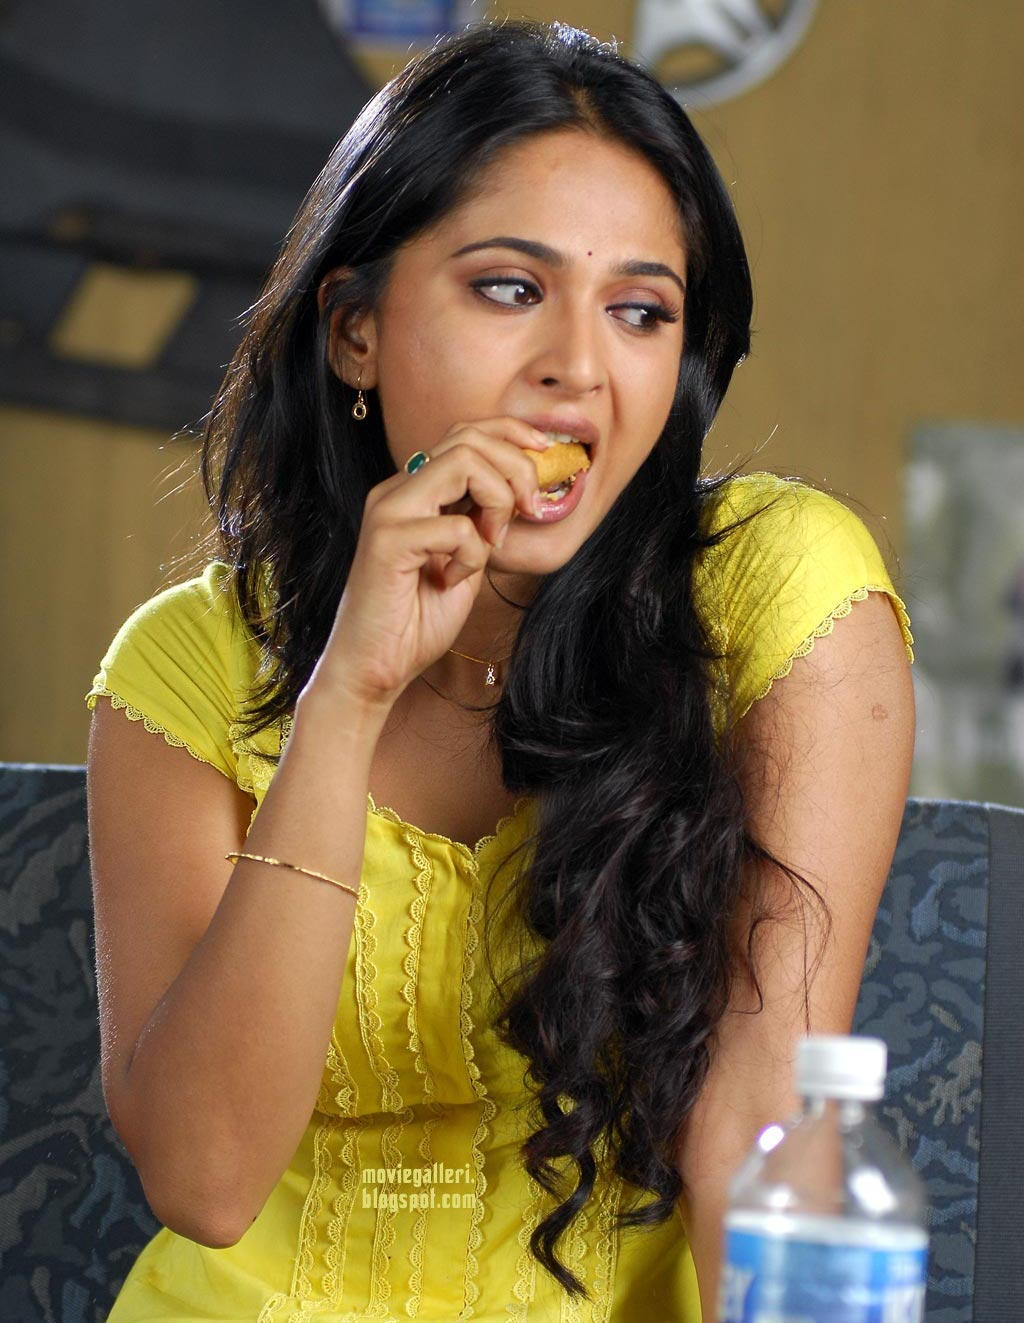 [anushka-shetty-hq-wallpapers-02.jpg]